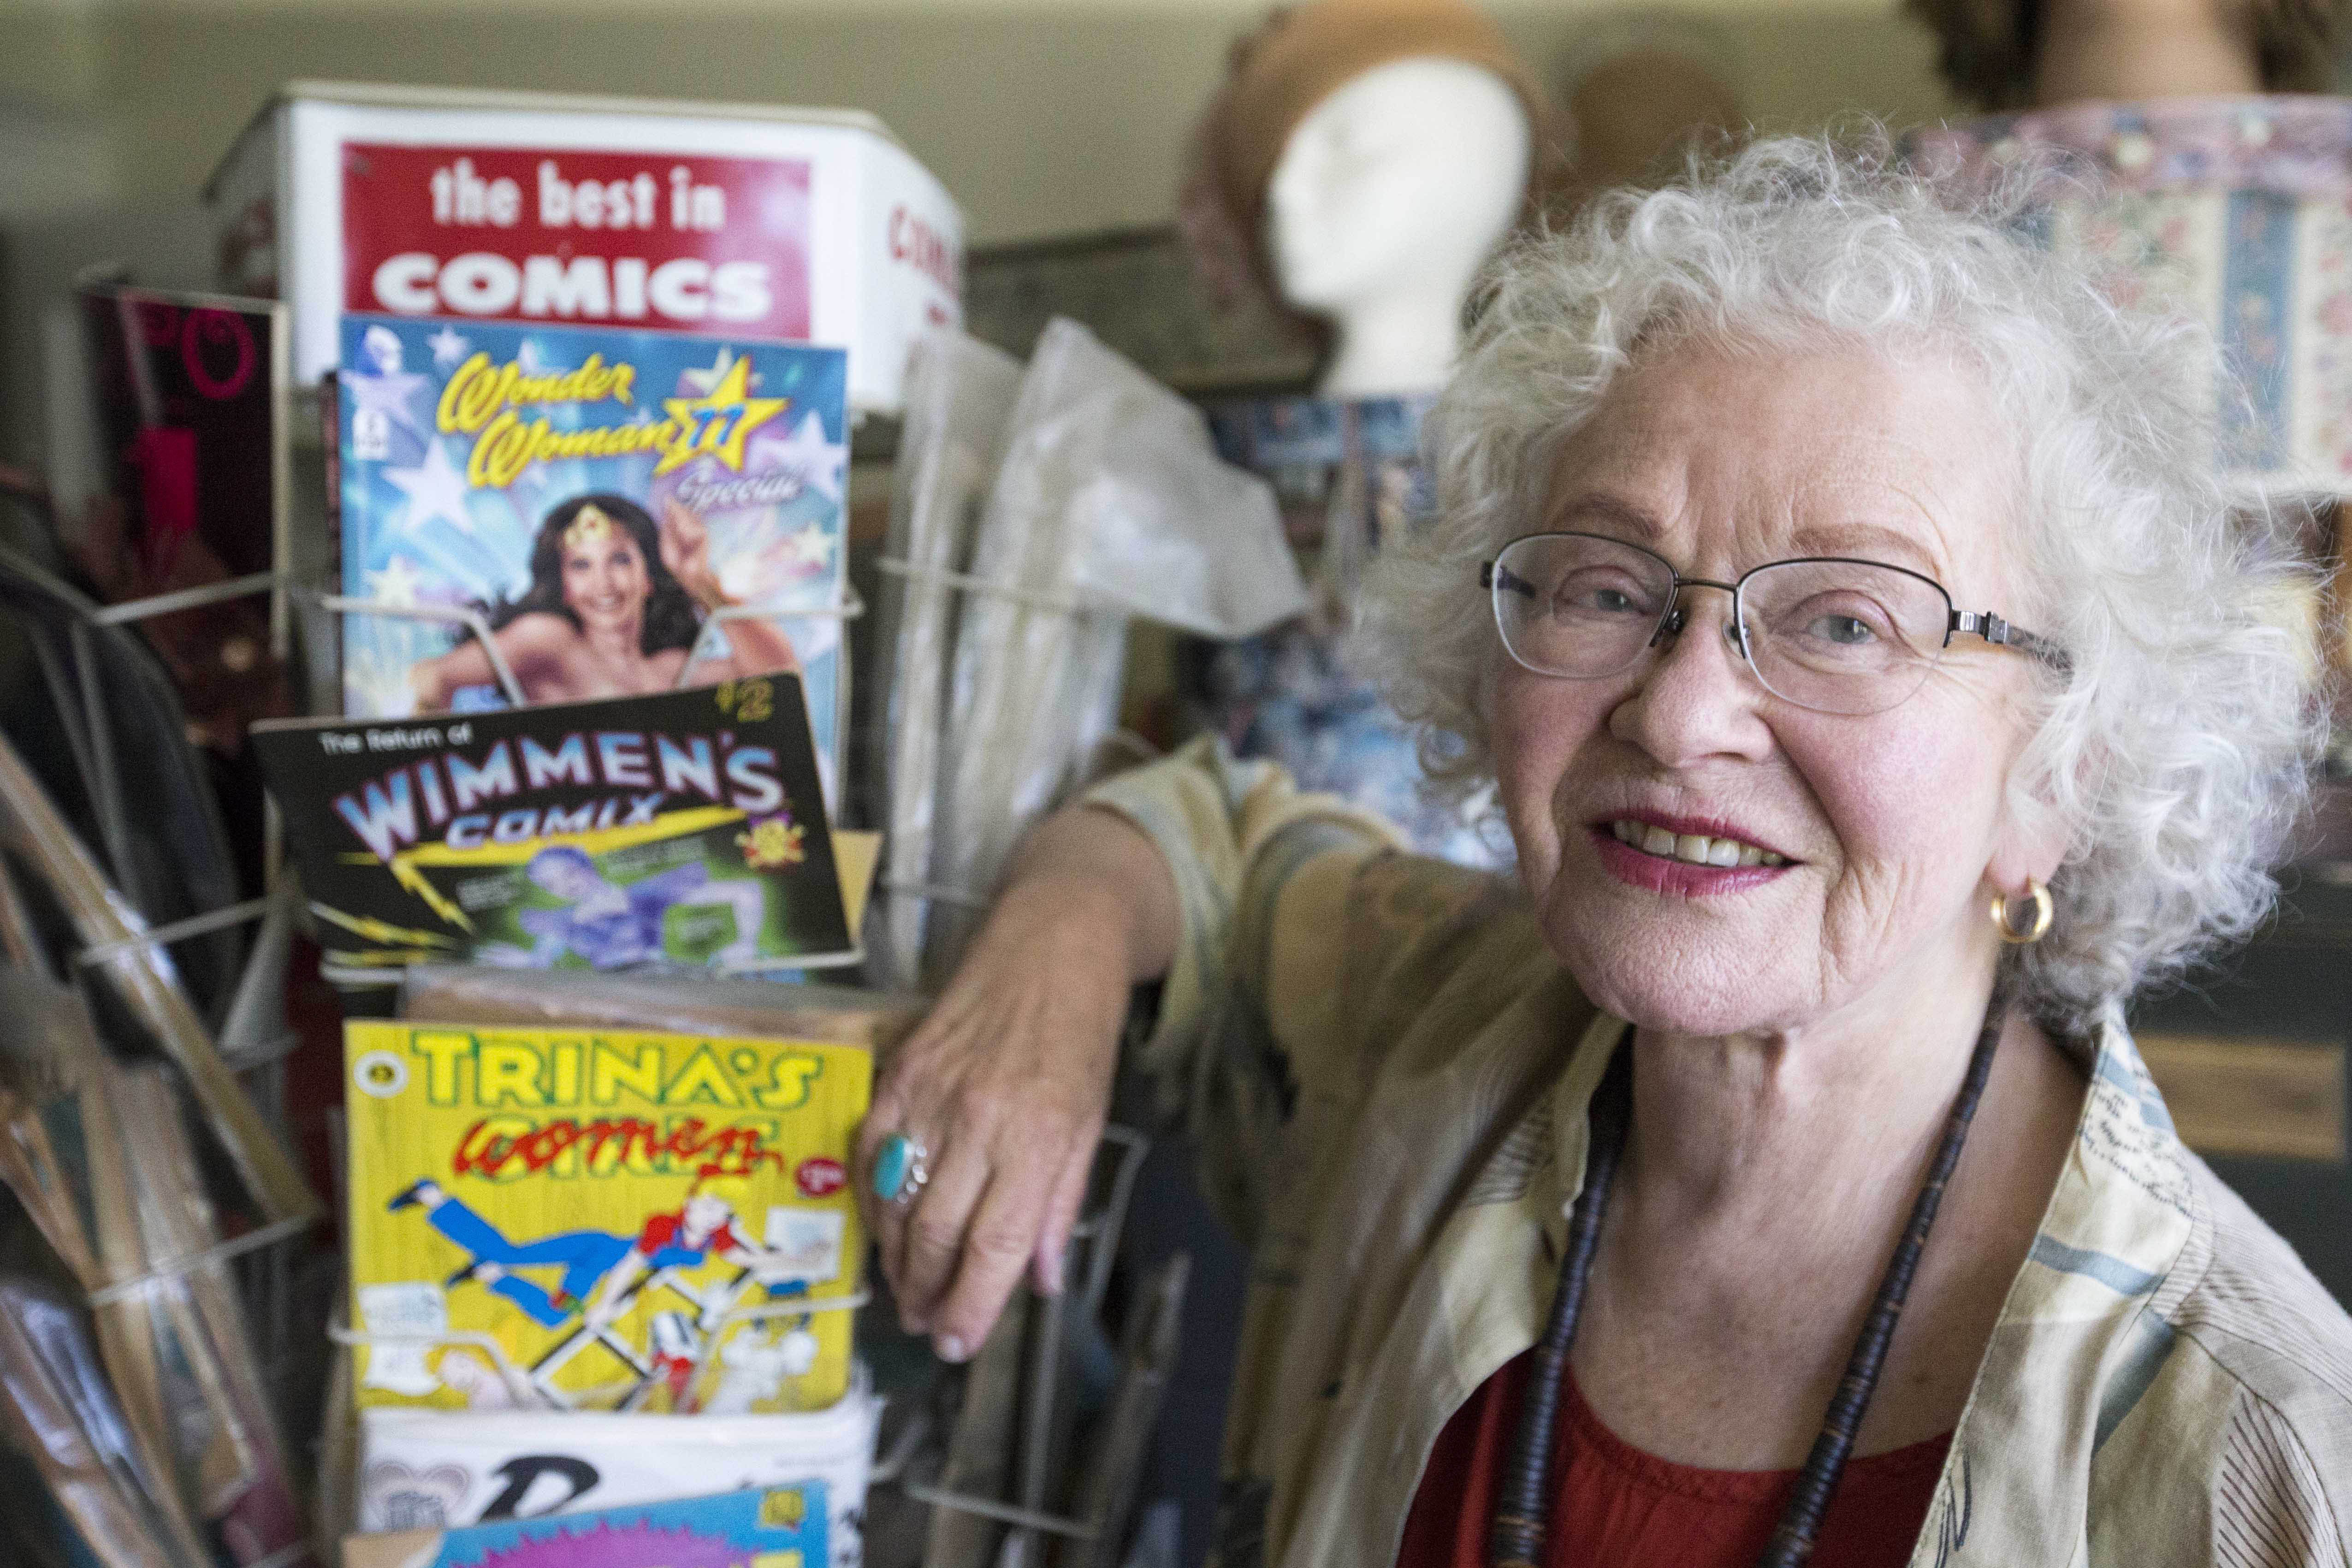 Veteran comics artist Trina Robbins has turned her father's book of Yiddish stories into a graphic novel. (Photo/Jessica Christian)